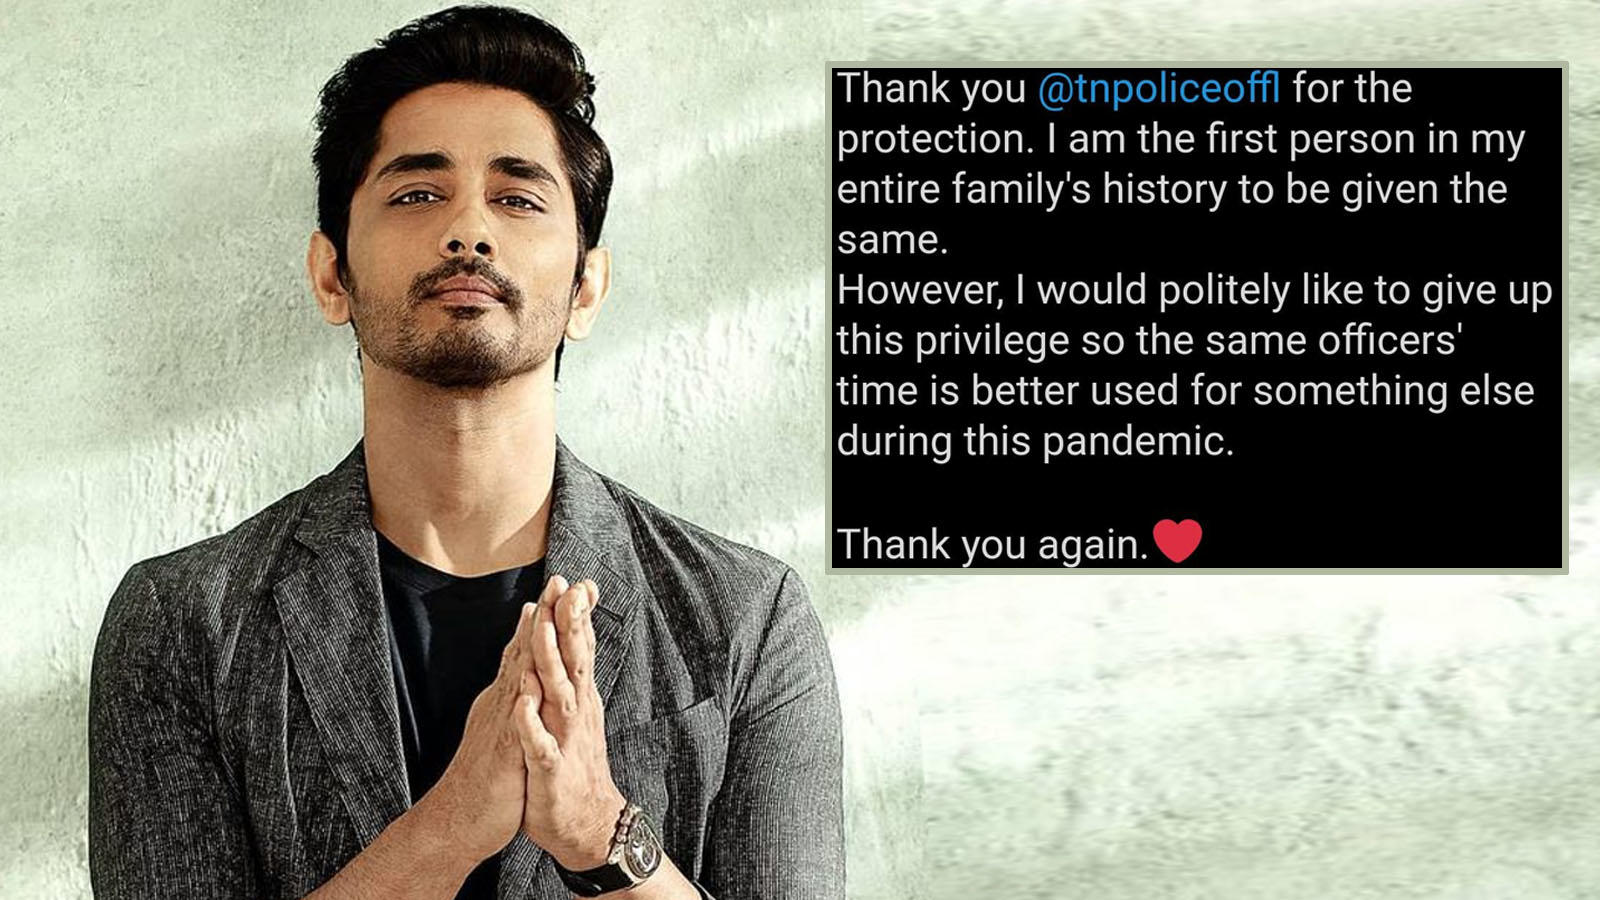 After receiving death threats, Siddharth turns down police protection: 'I would politely like to give up this privilege' | Hindi Movie News – Bollywood – Times of India